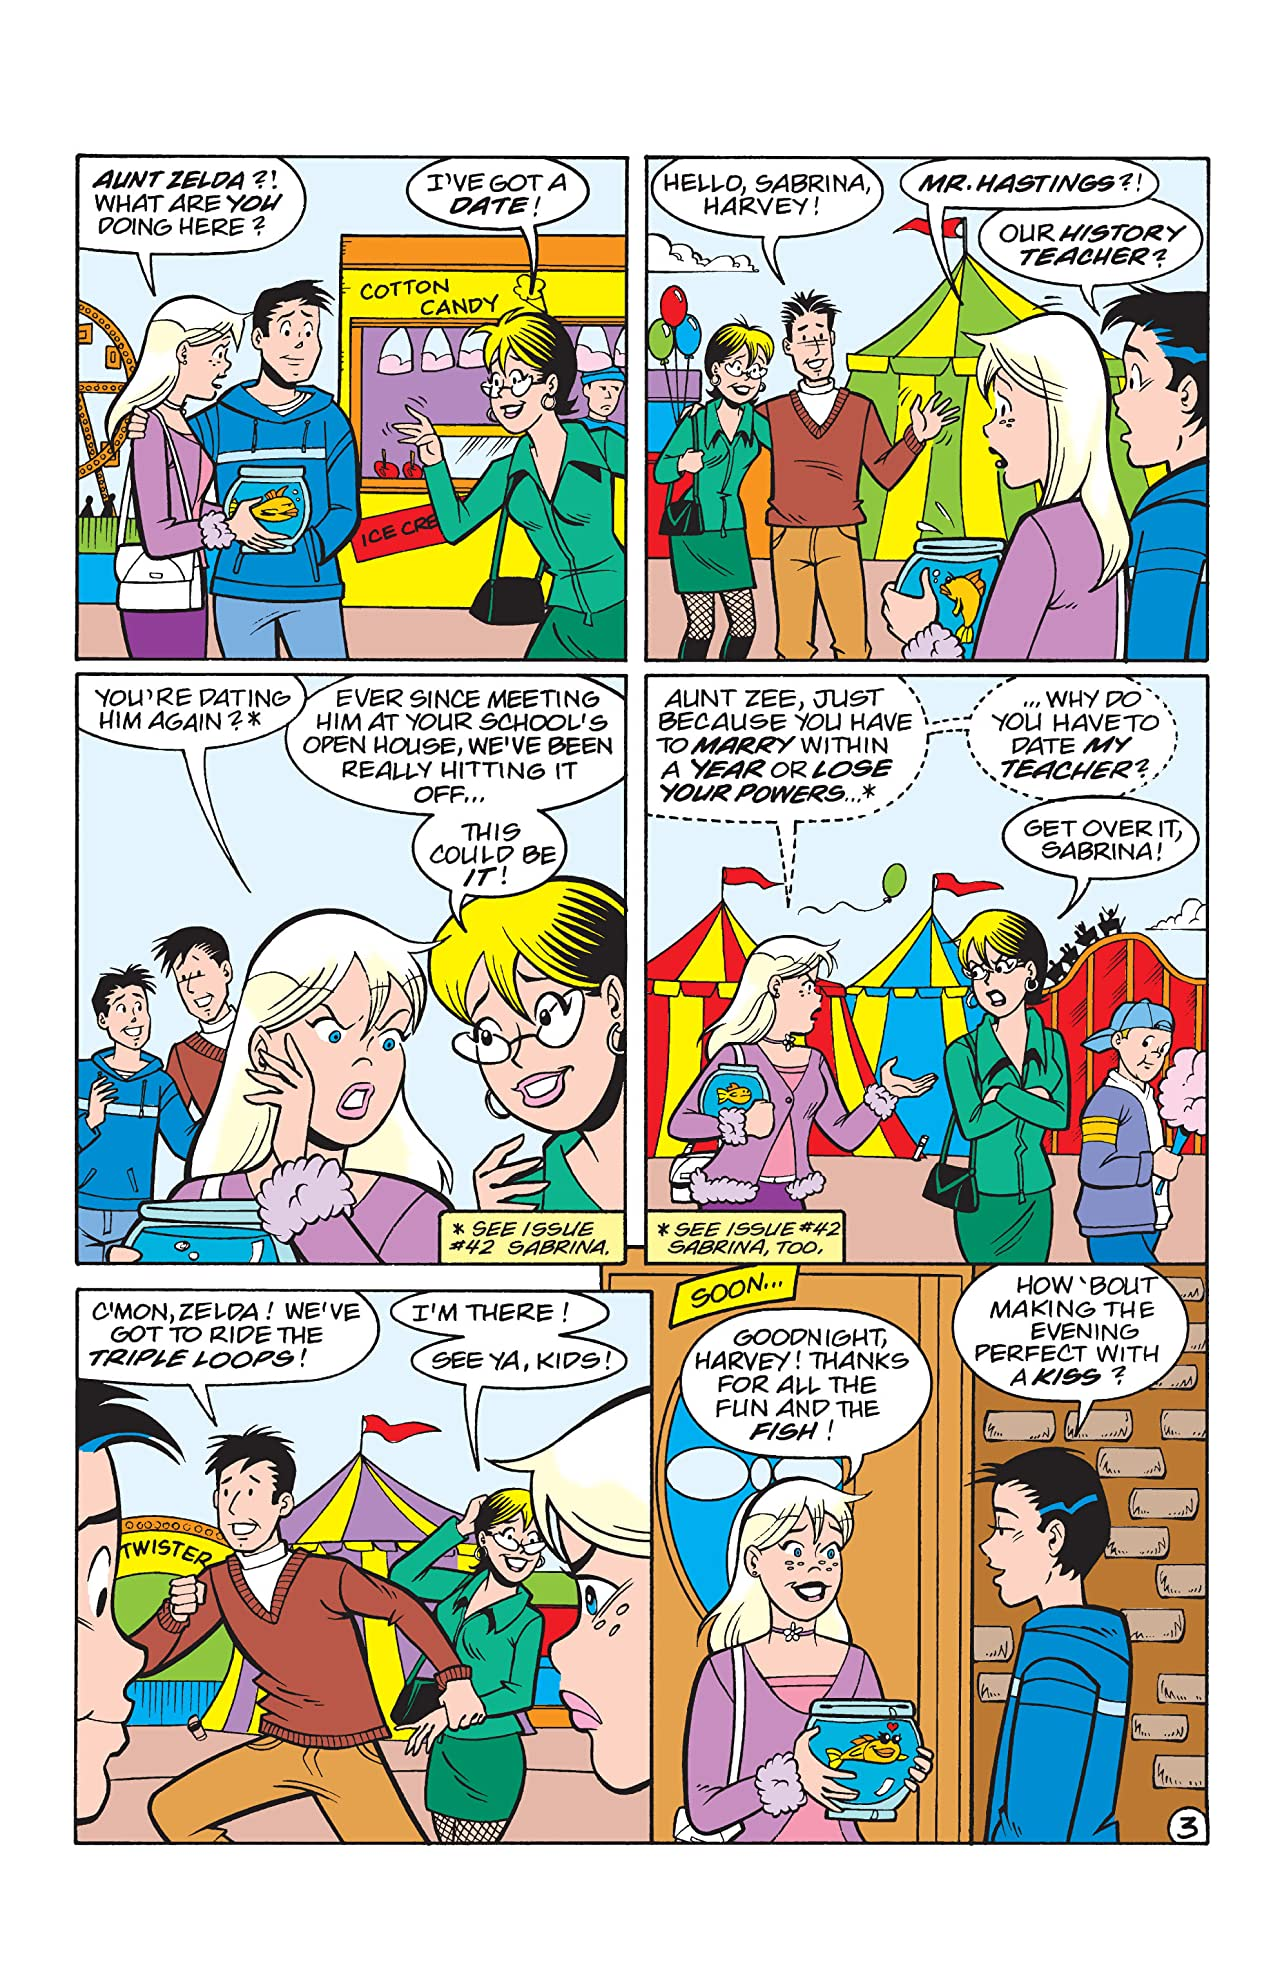 Sabrina the Teenage Witch #43